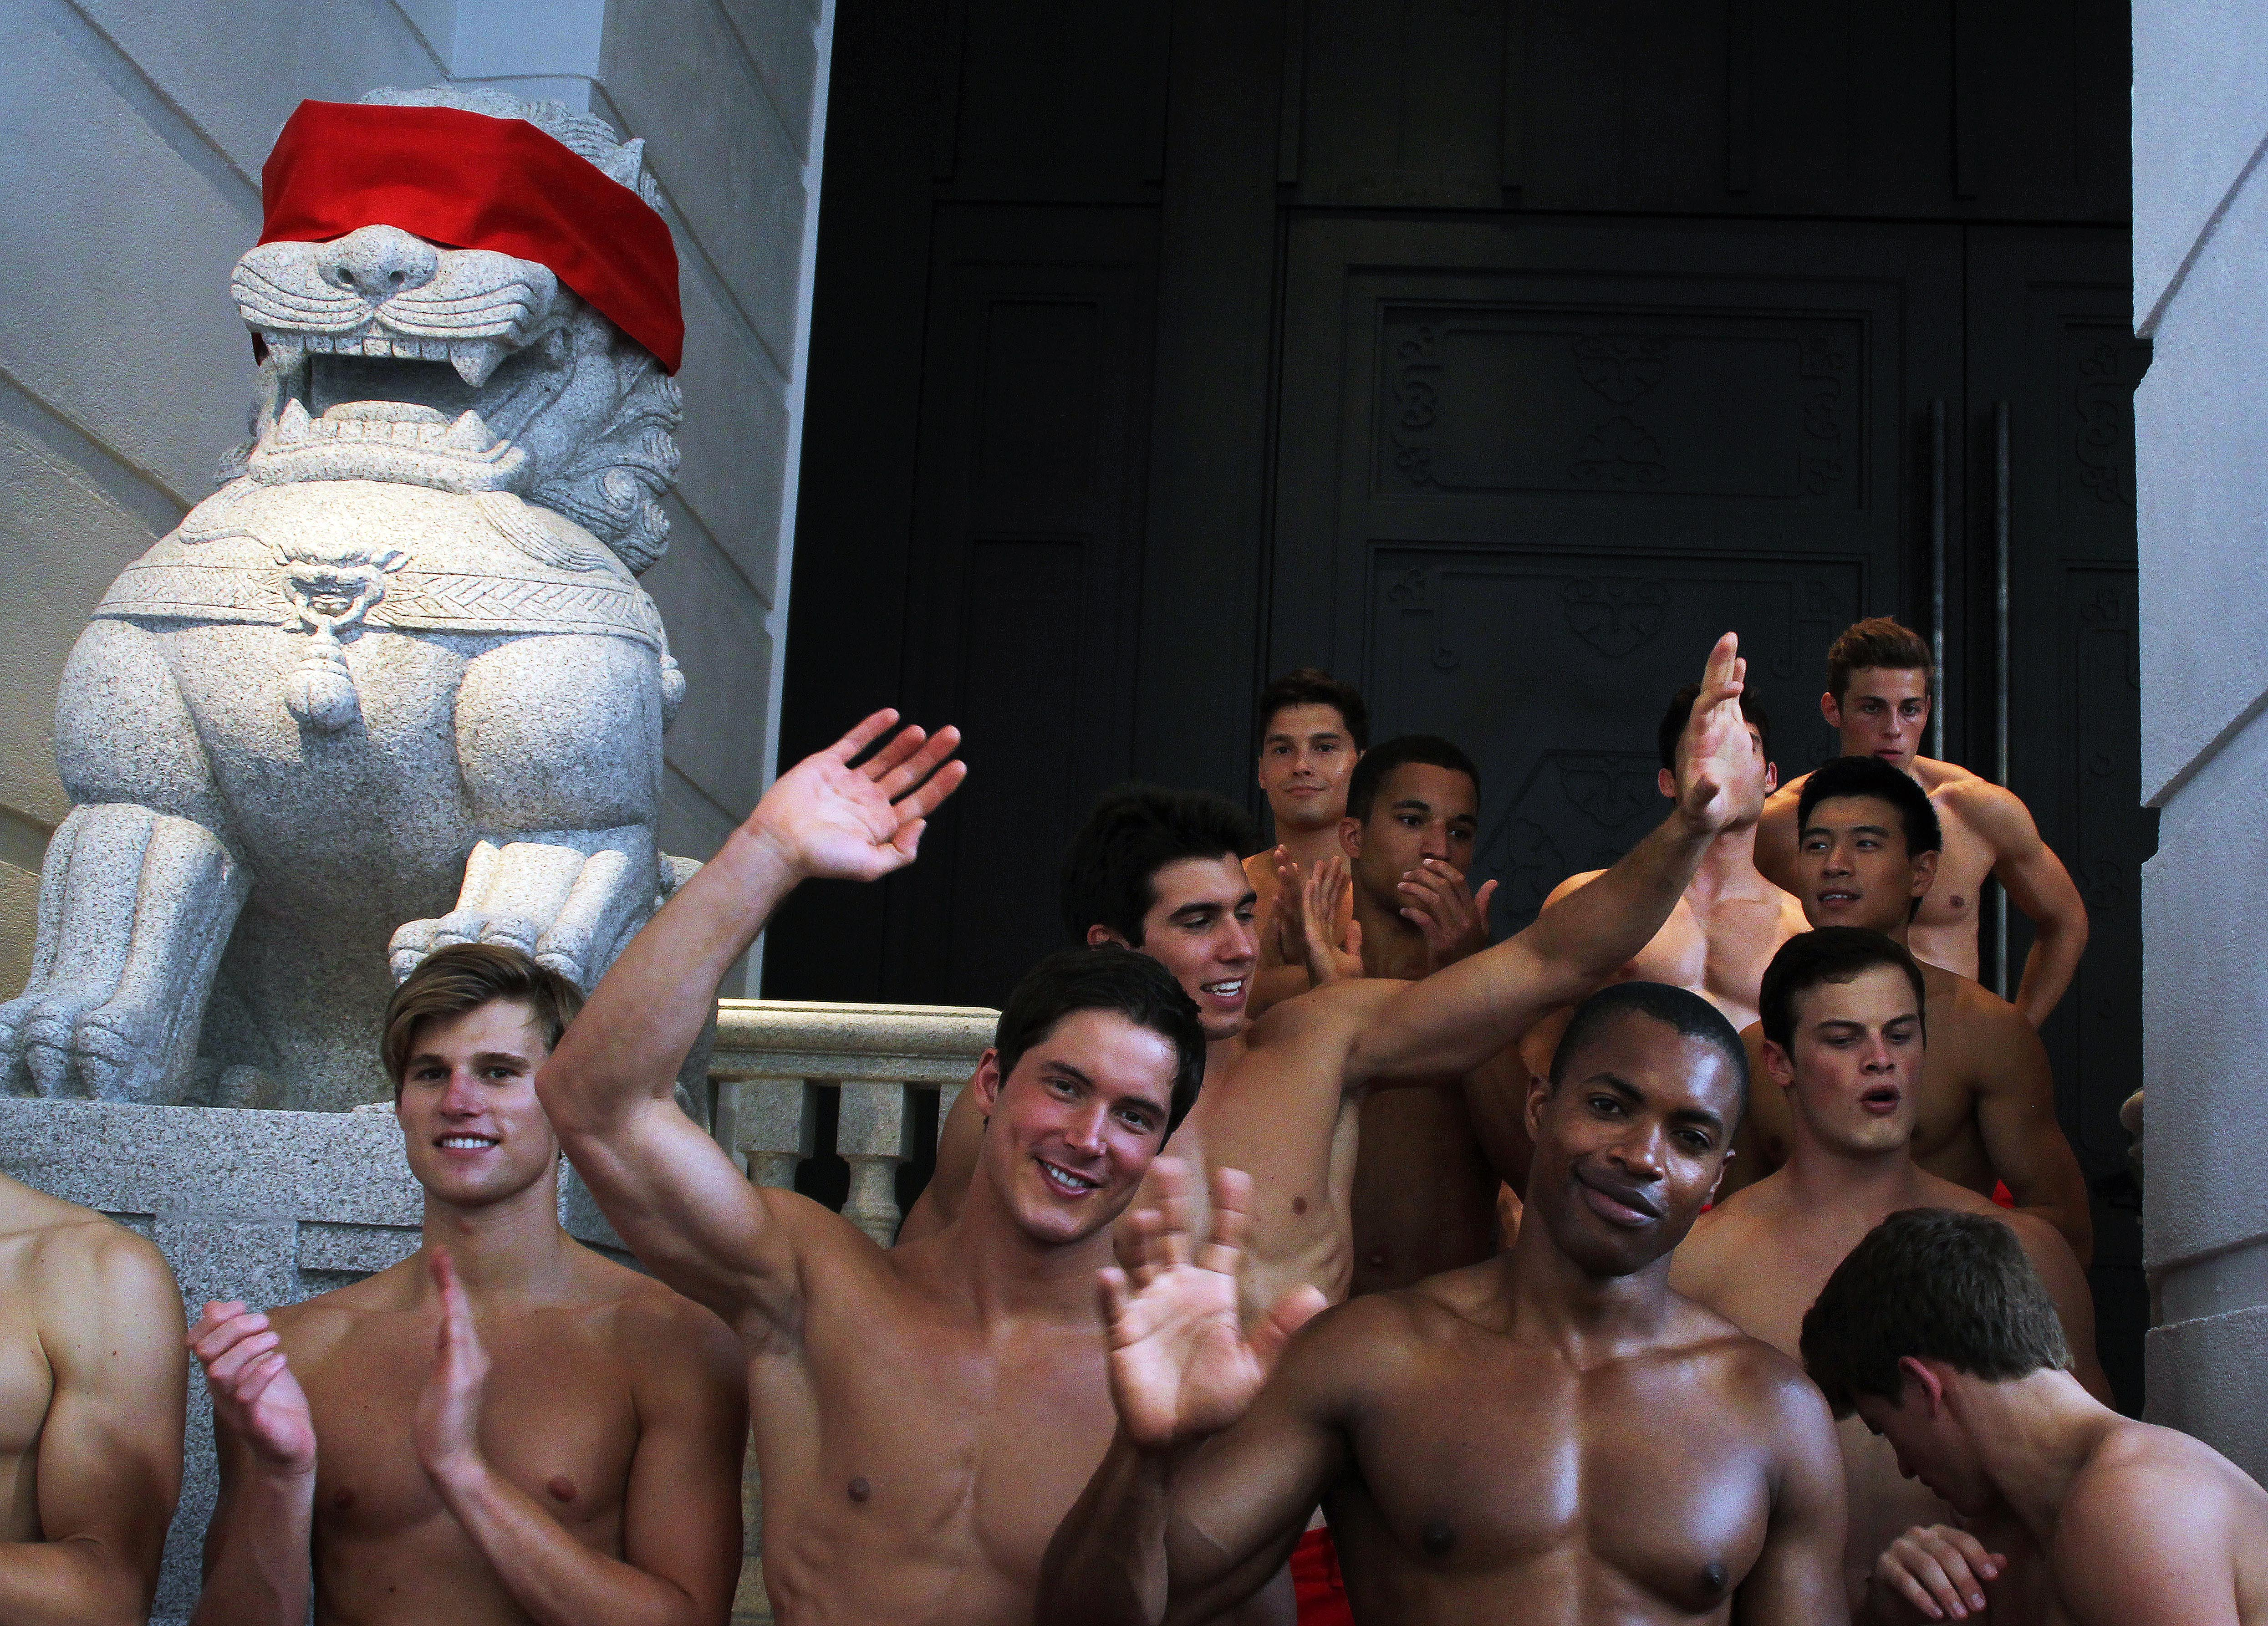 A group of topless male models waves to